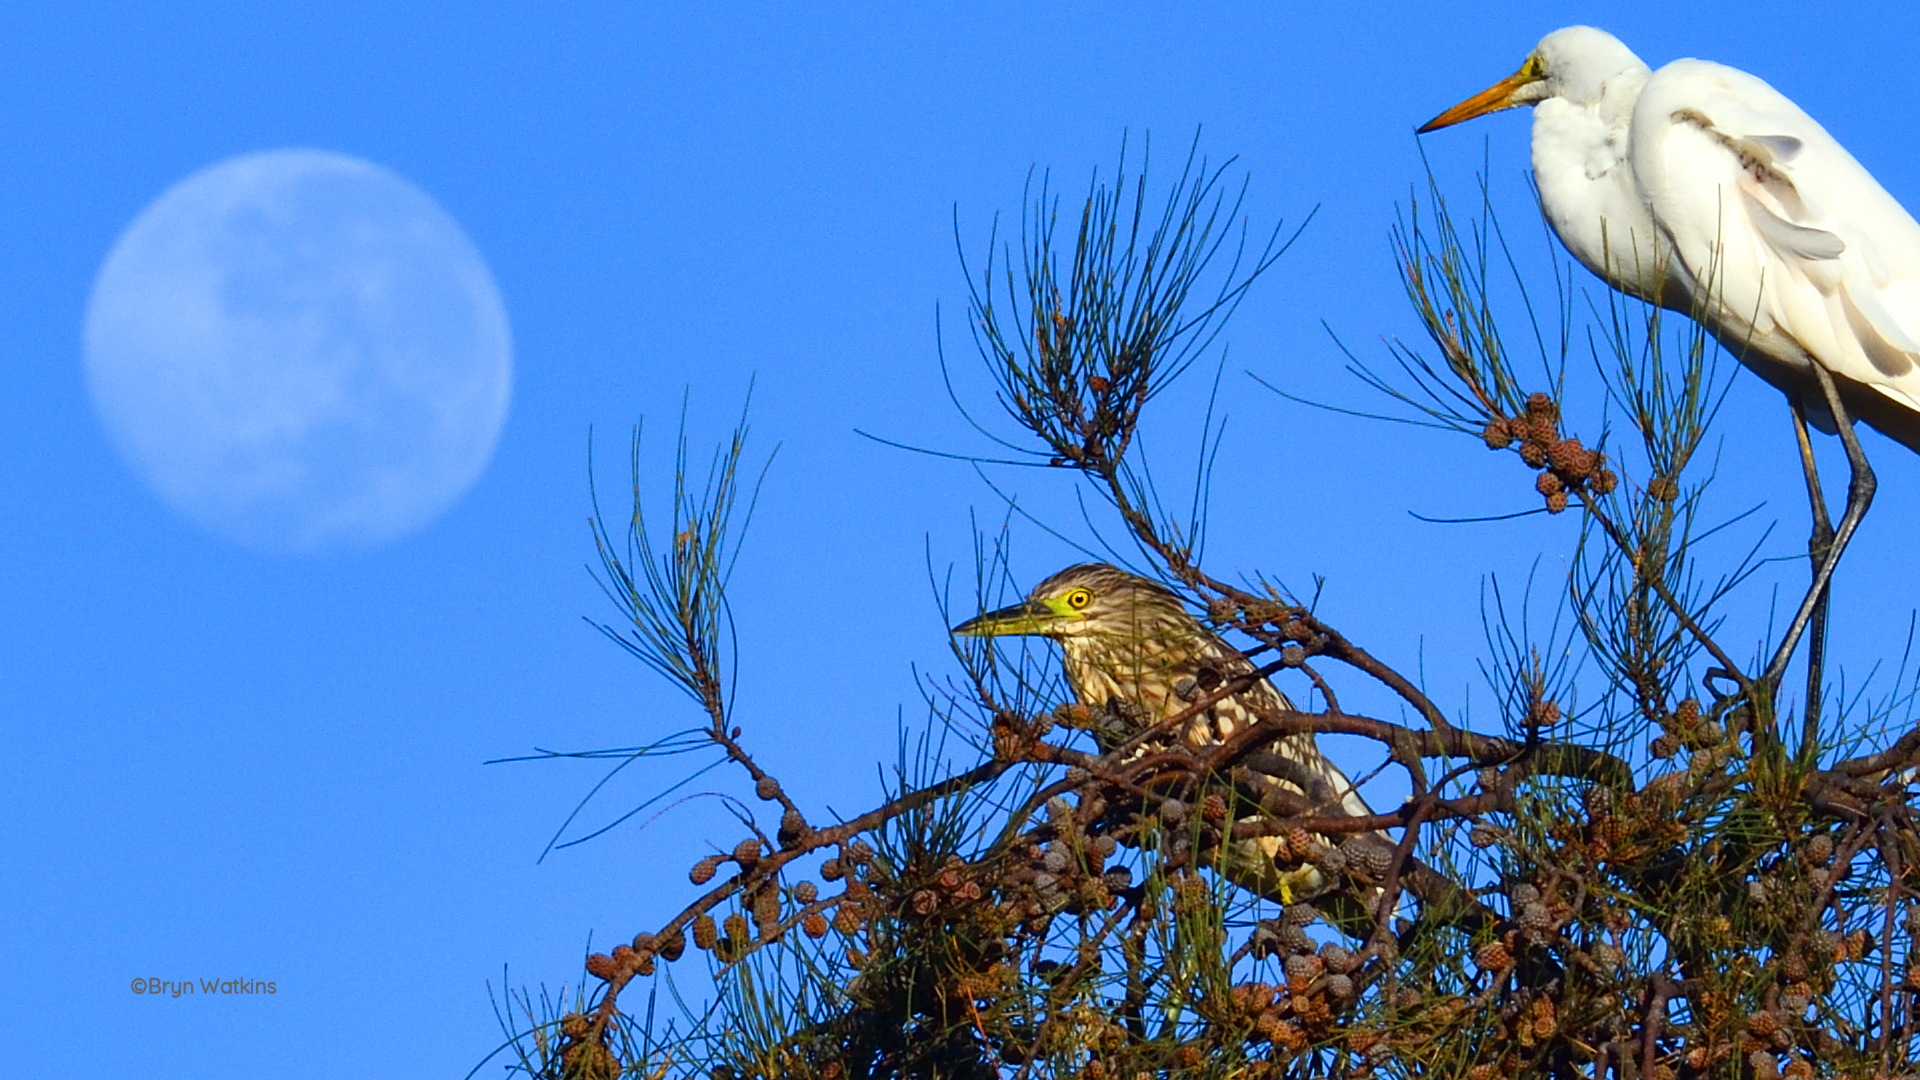 photographer Brin Watkins, birds roosting in a tree,  juvenile nankeen night heron with eastern great egret, full moon in background